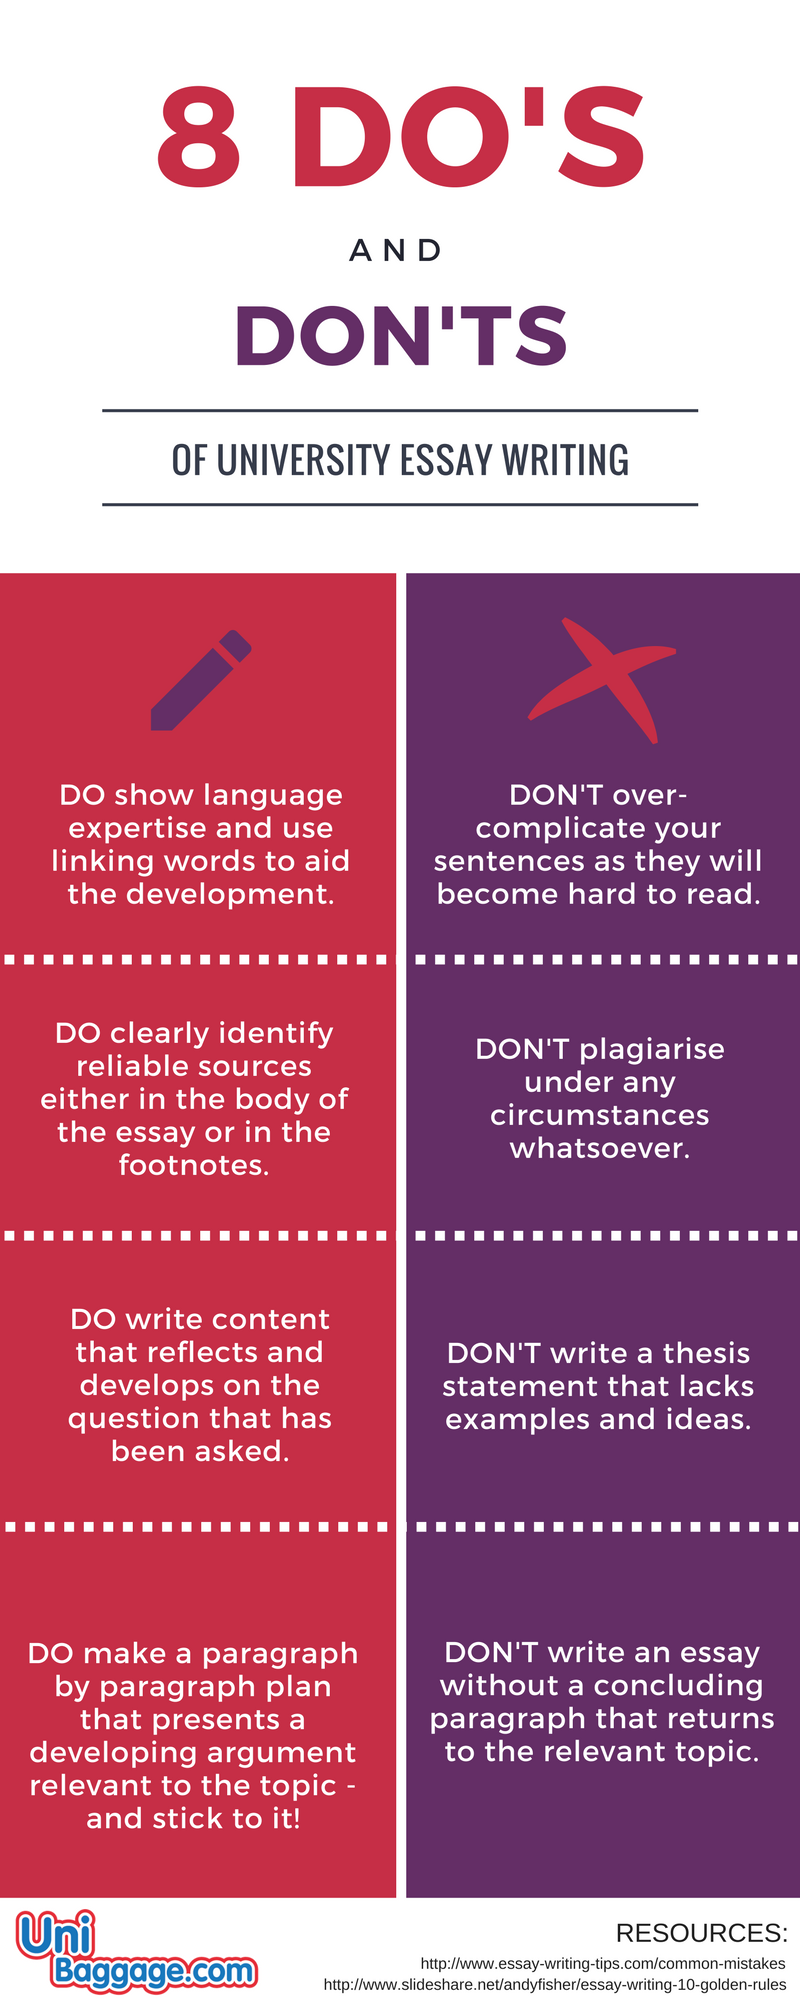 8 Do's And Don'ts Of University Essay Writing (Infographic) | Uni ...